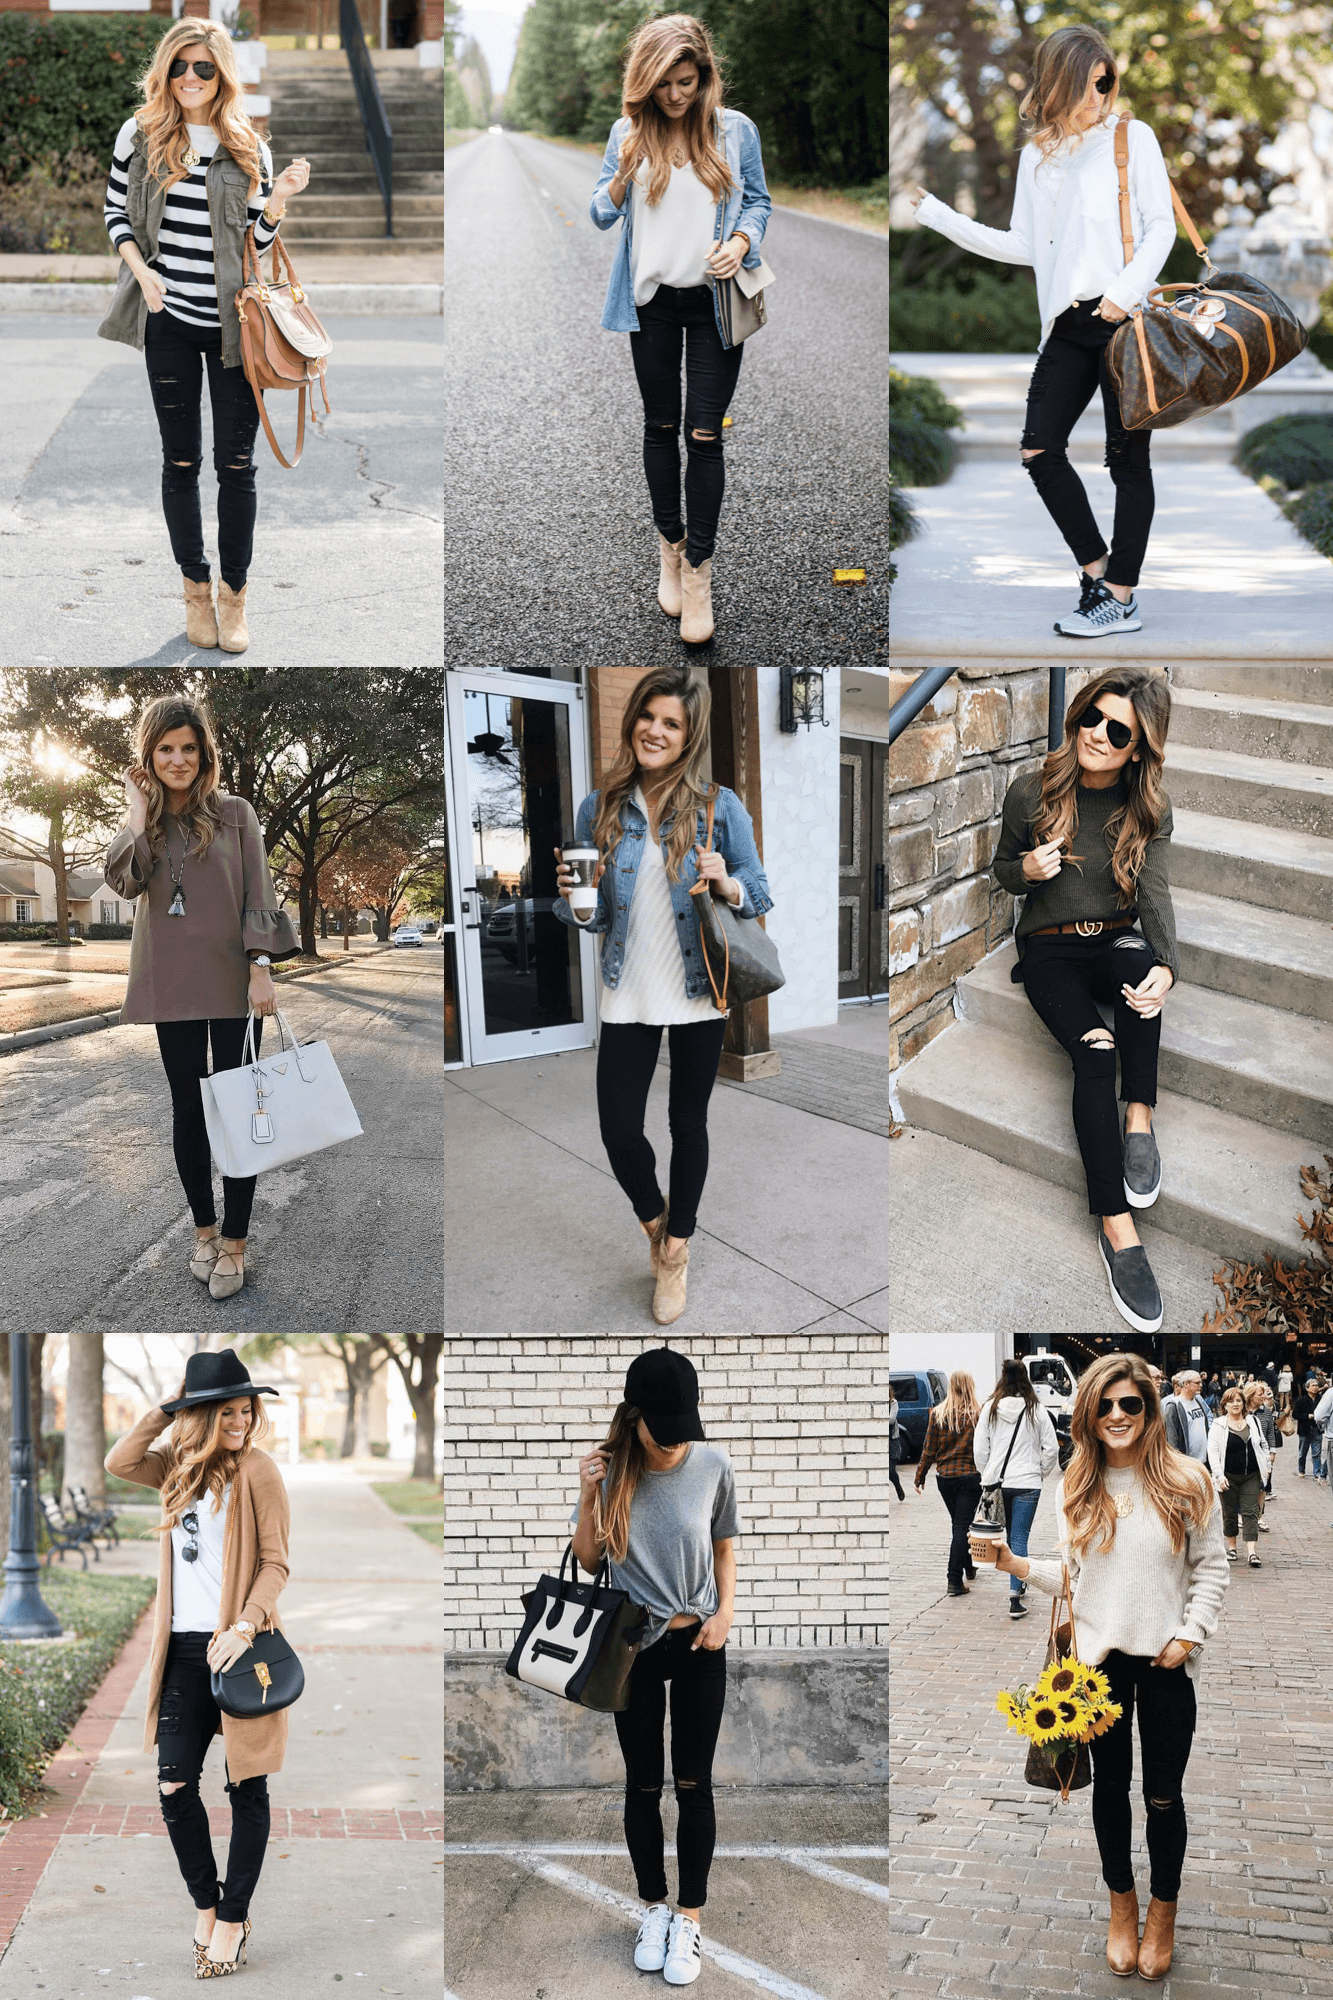 6a7c40a49e8 Figuring out what to wear with black jeans can be simple, but it's not  always easy. Head this way to discover 30+ outfit ideas with black jeans!